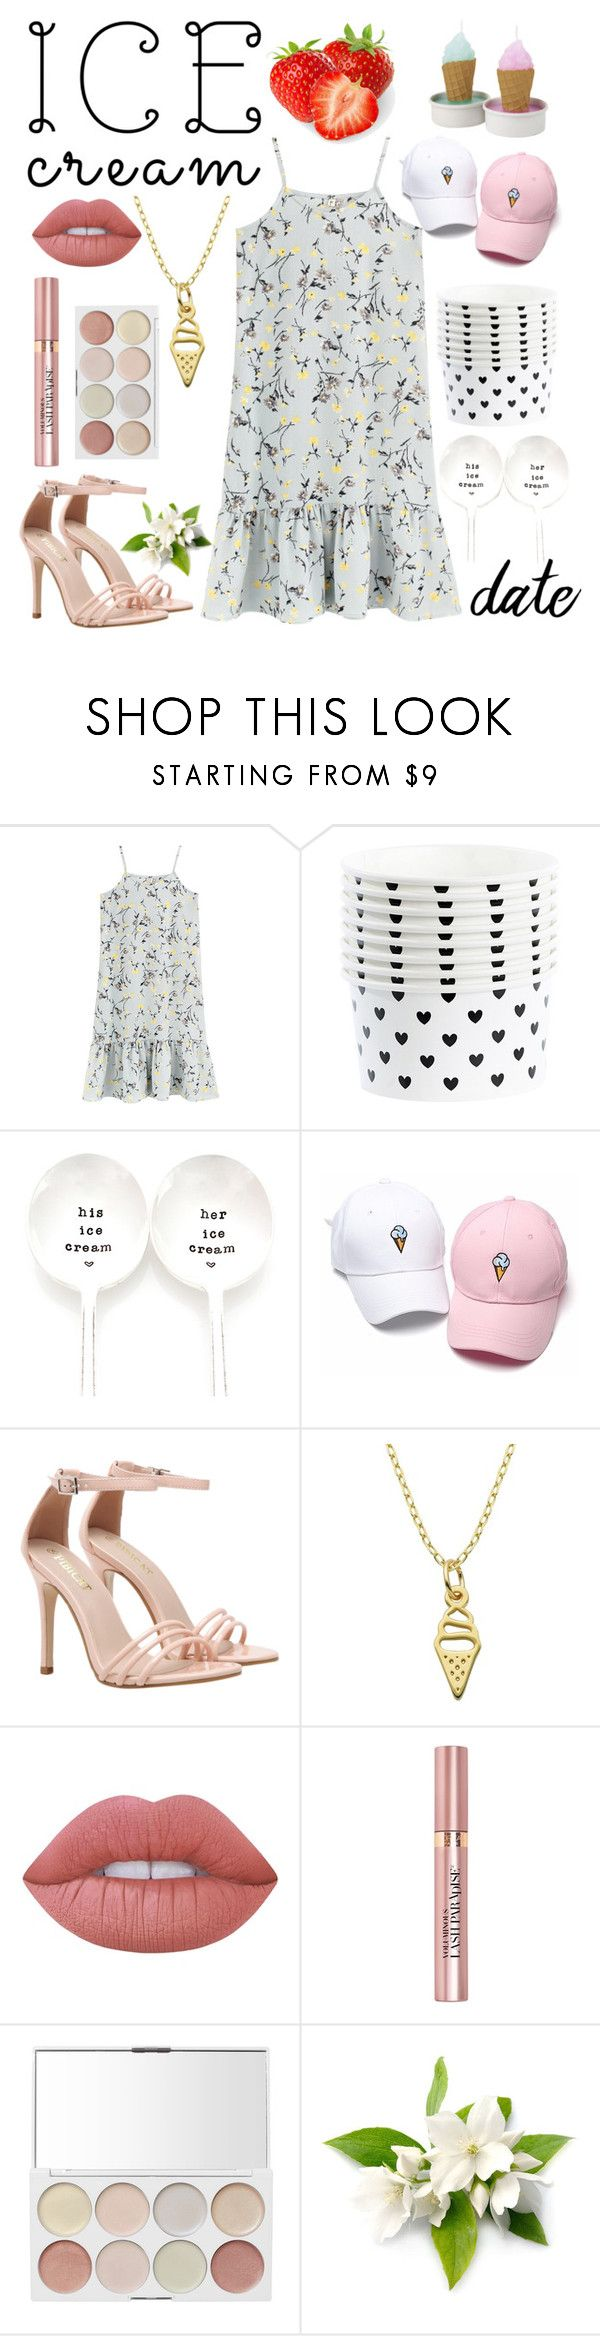 """cute ice cream date🍦💕"" by soleia19 ❤ liked on Polyvore featuring Miss Étoile, Milk + Honey, Lord & Taylor, Lime Crime and L'Oréal Paris"